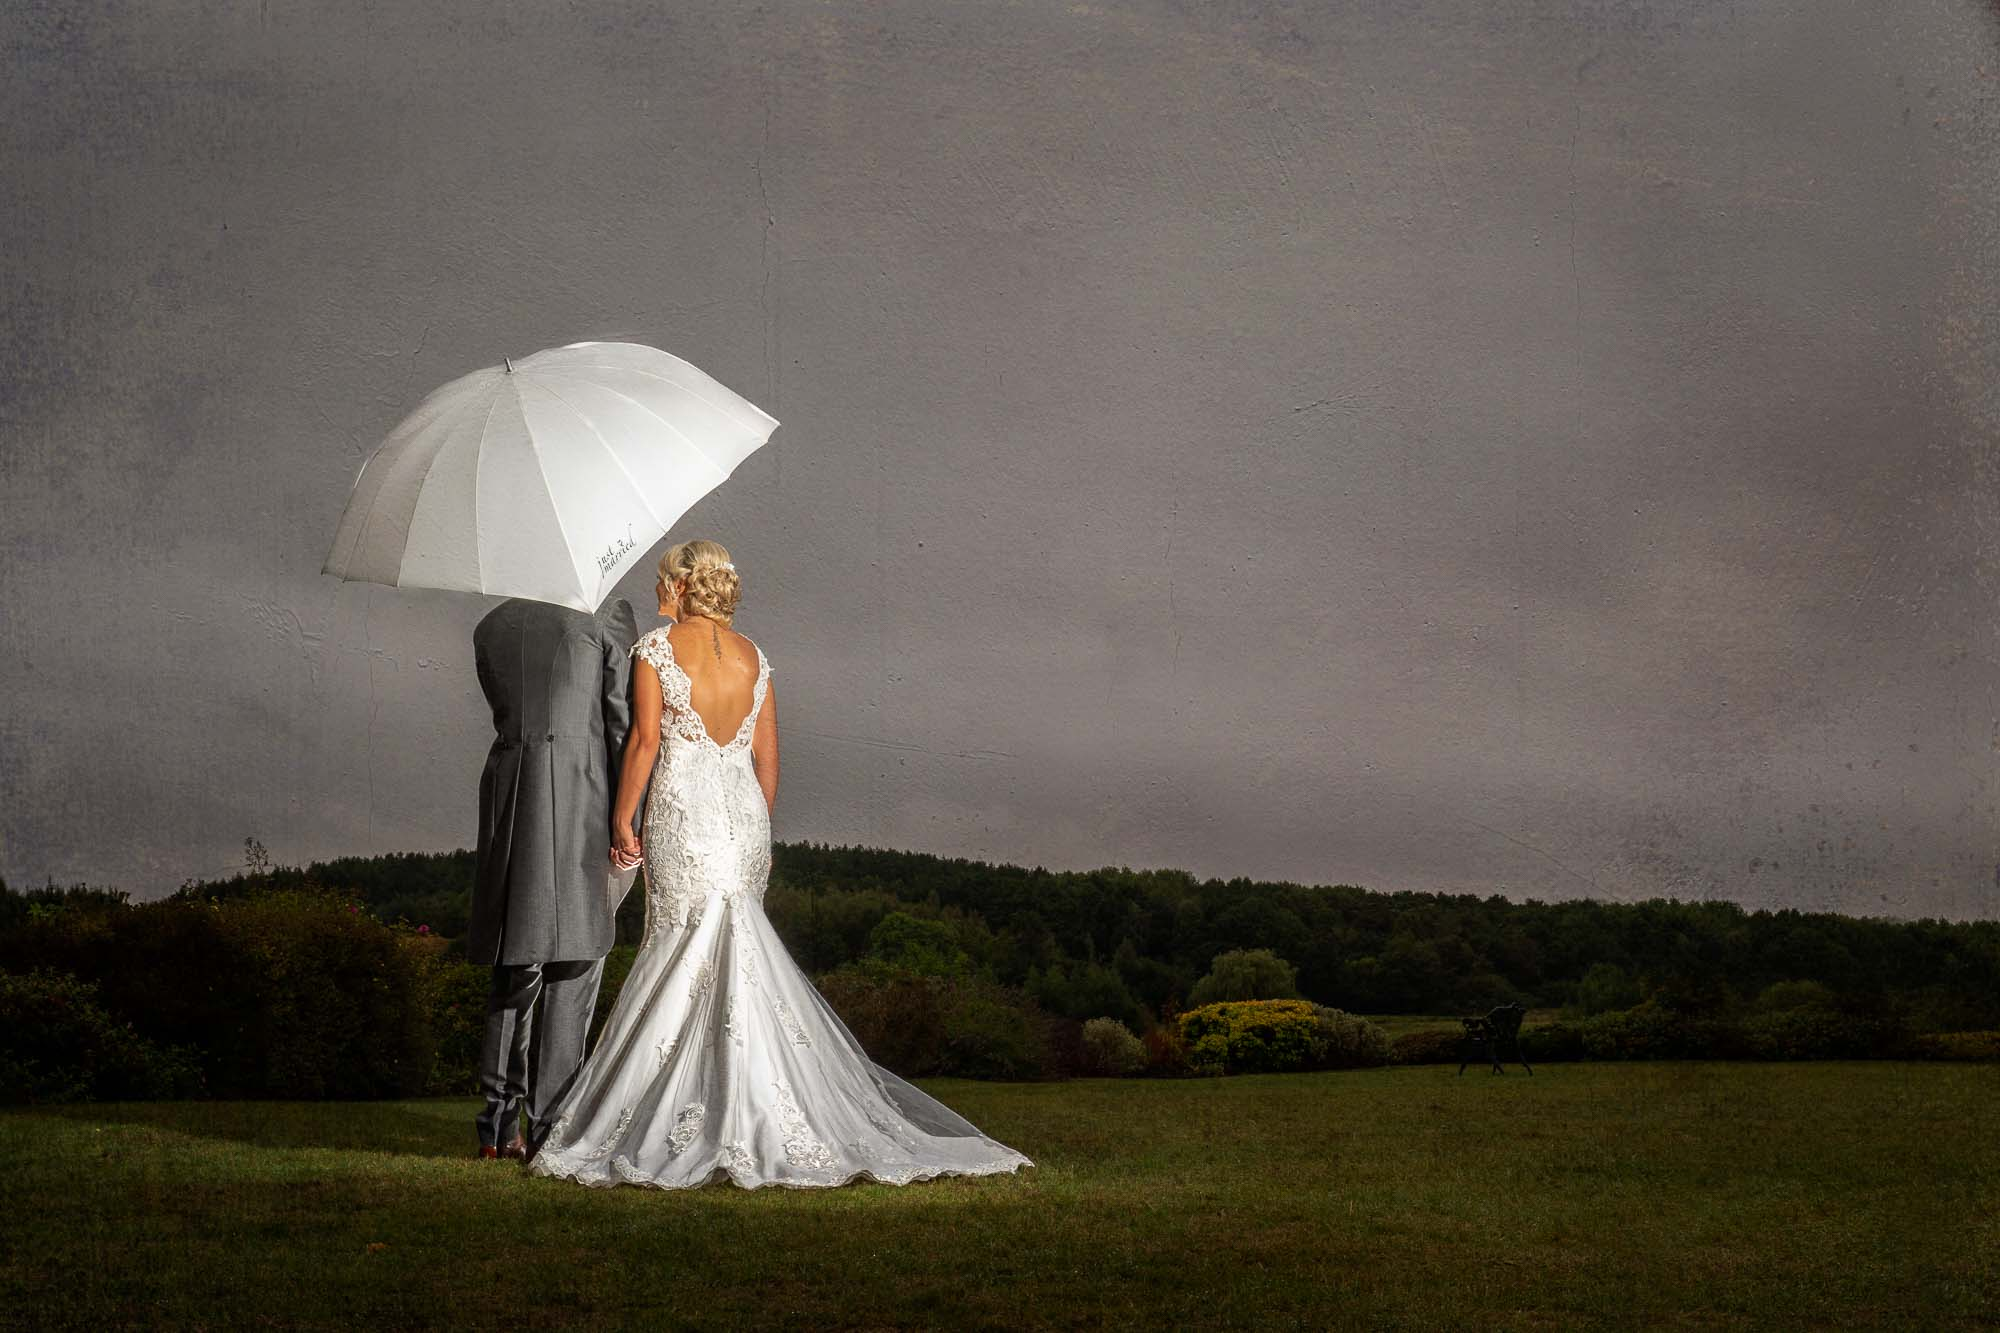 Bride and groom in the rain with umbrella at Waterton Park in Wakefield